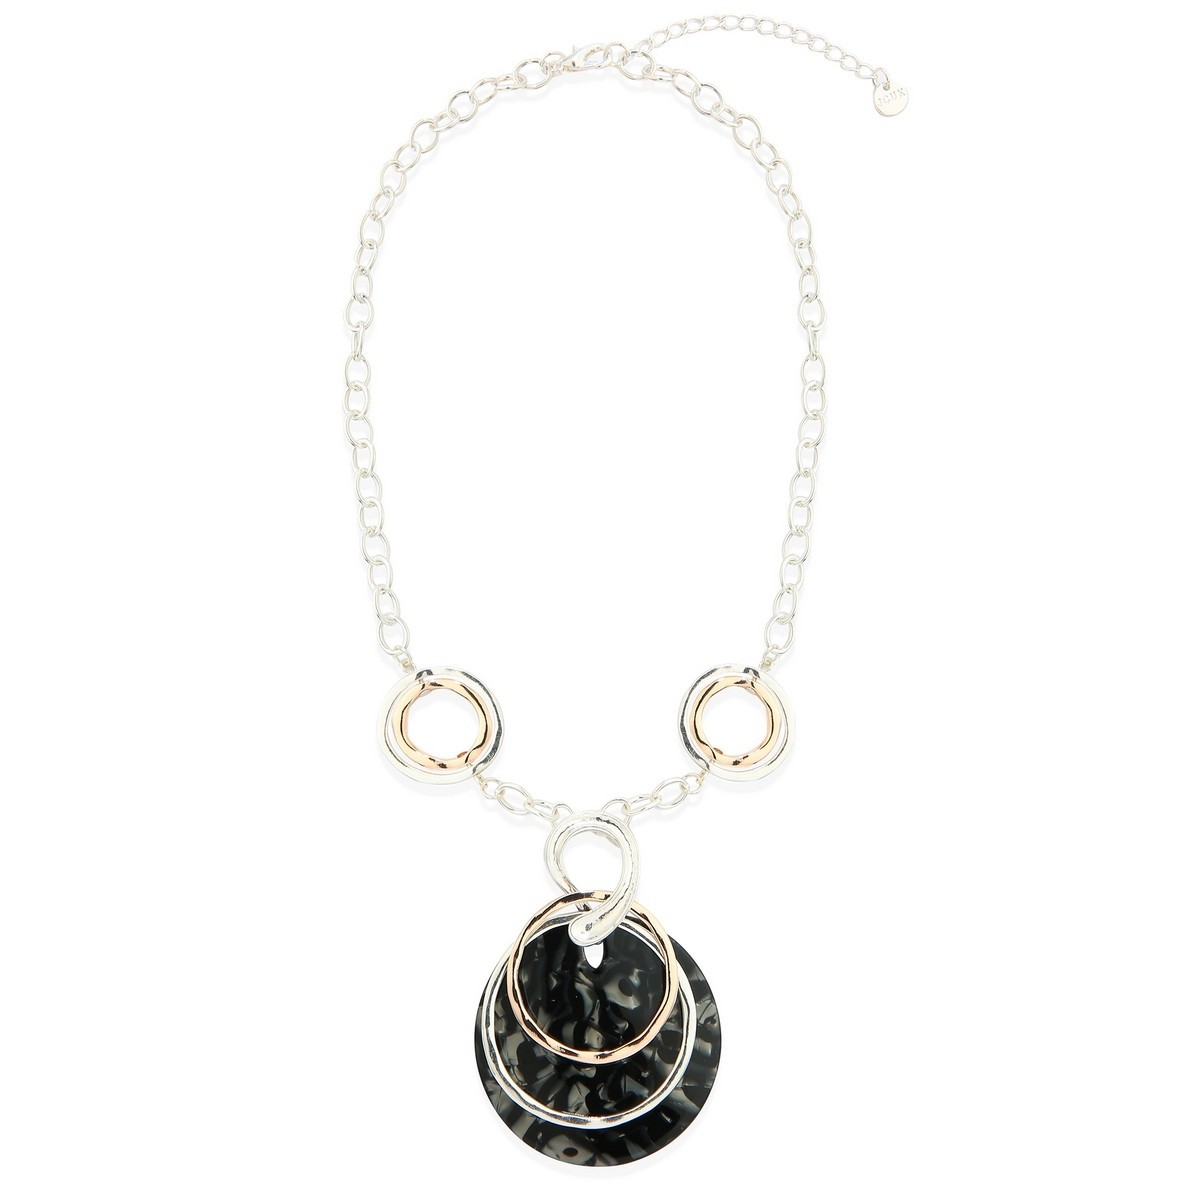 Black Mother of Pearl Disc Necklace